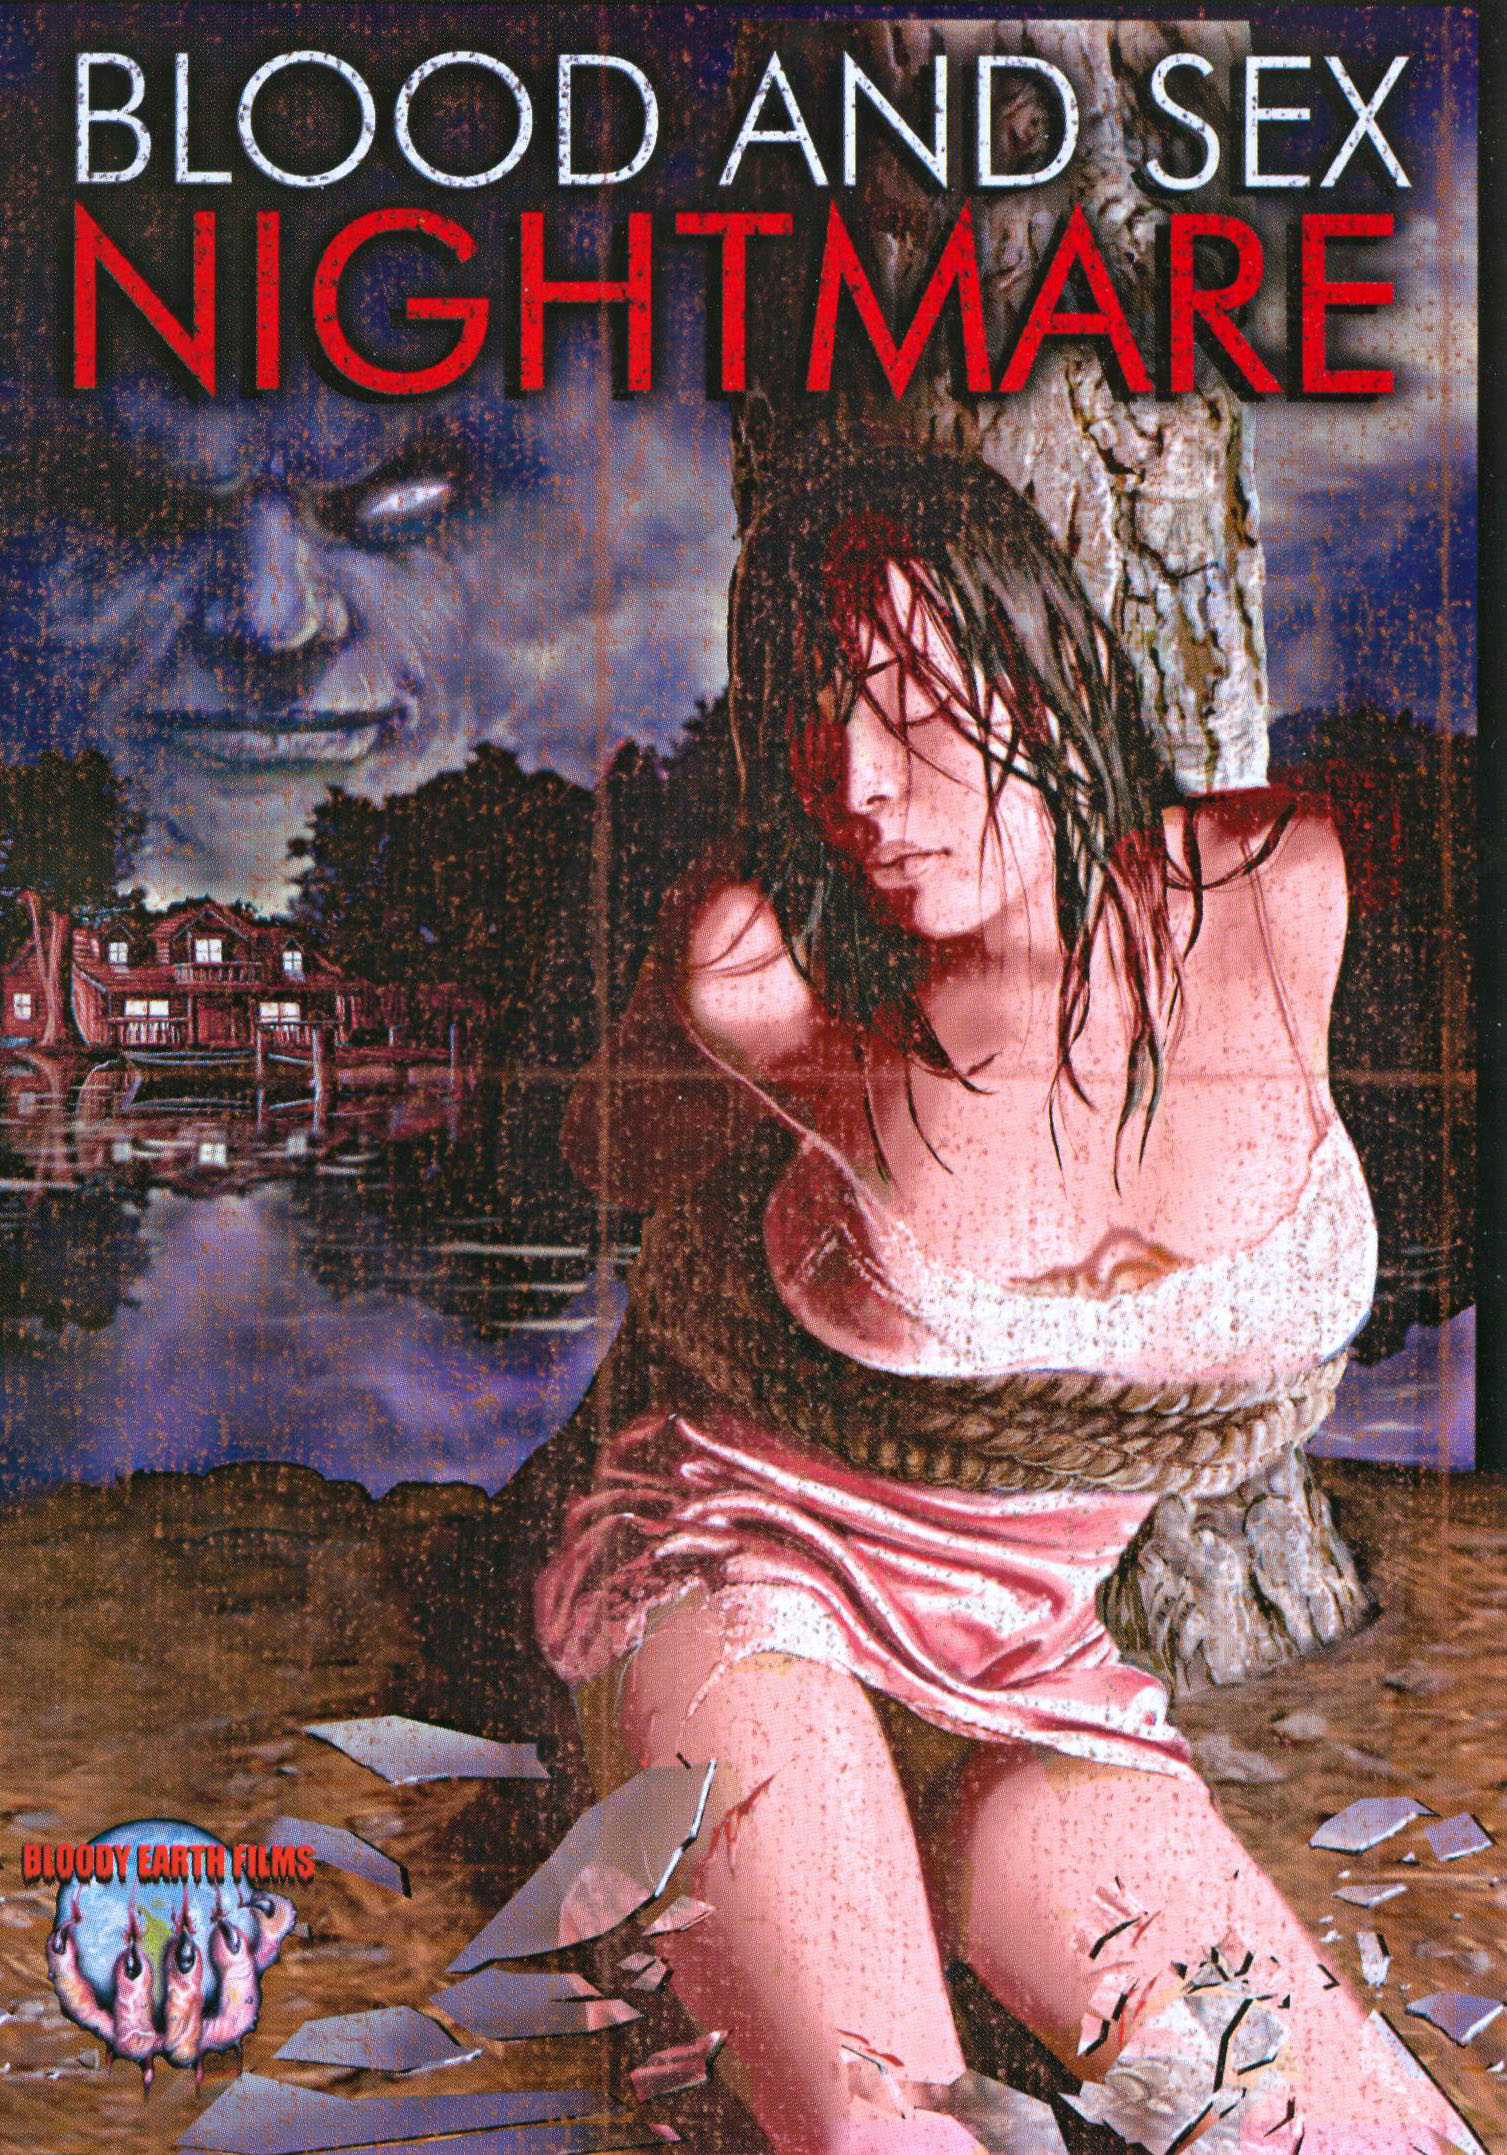 Cast of blood and sex nightmare